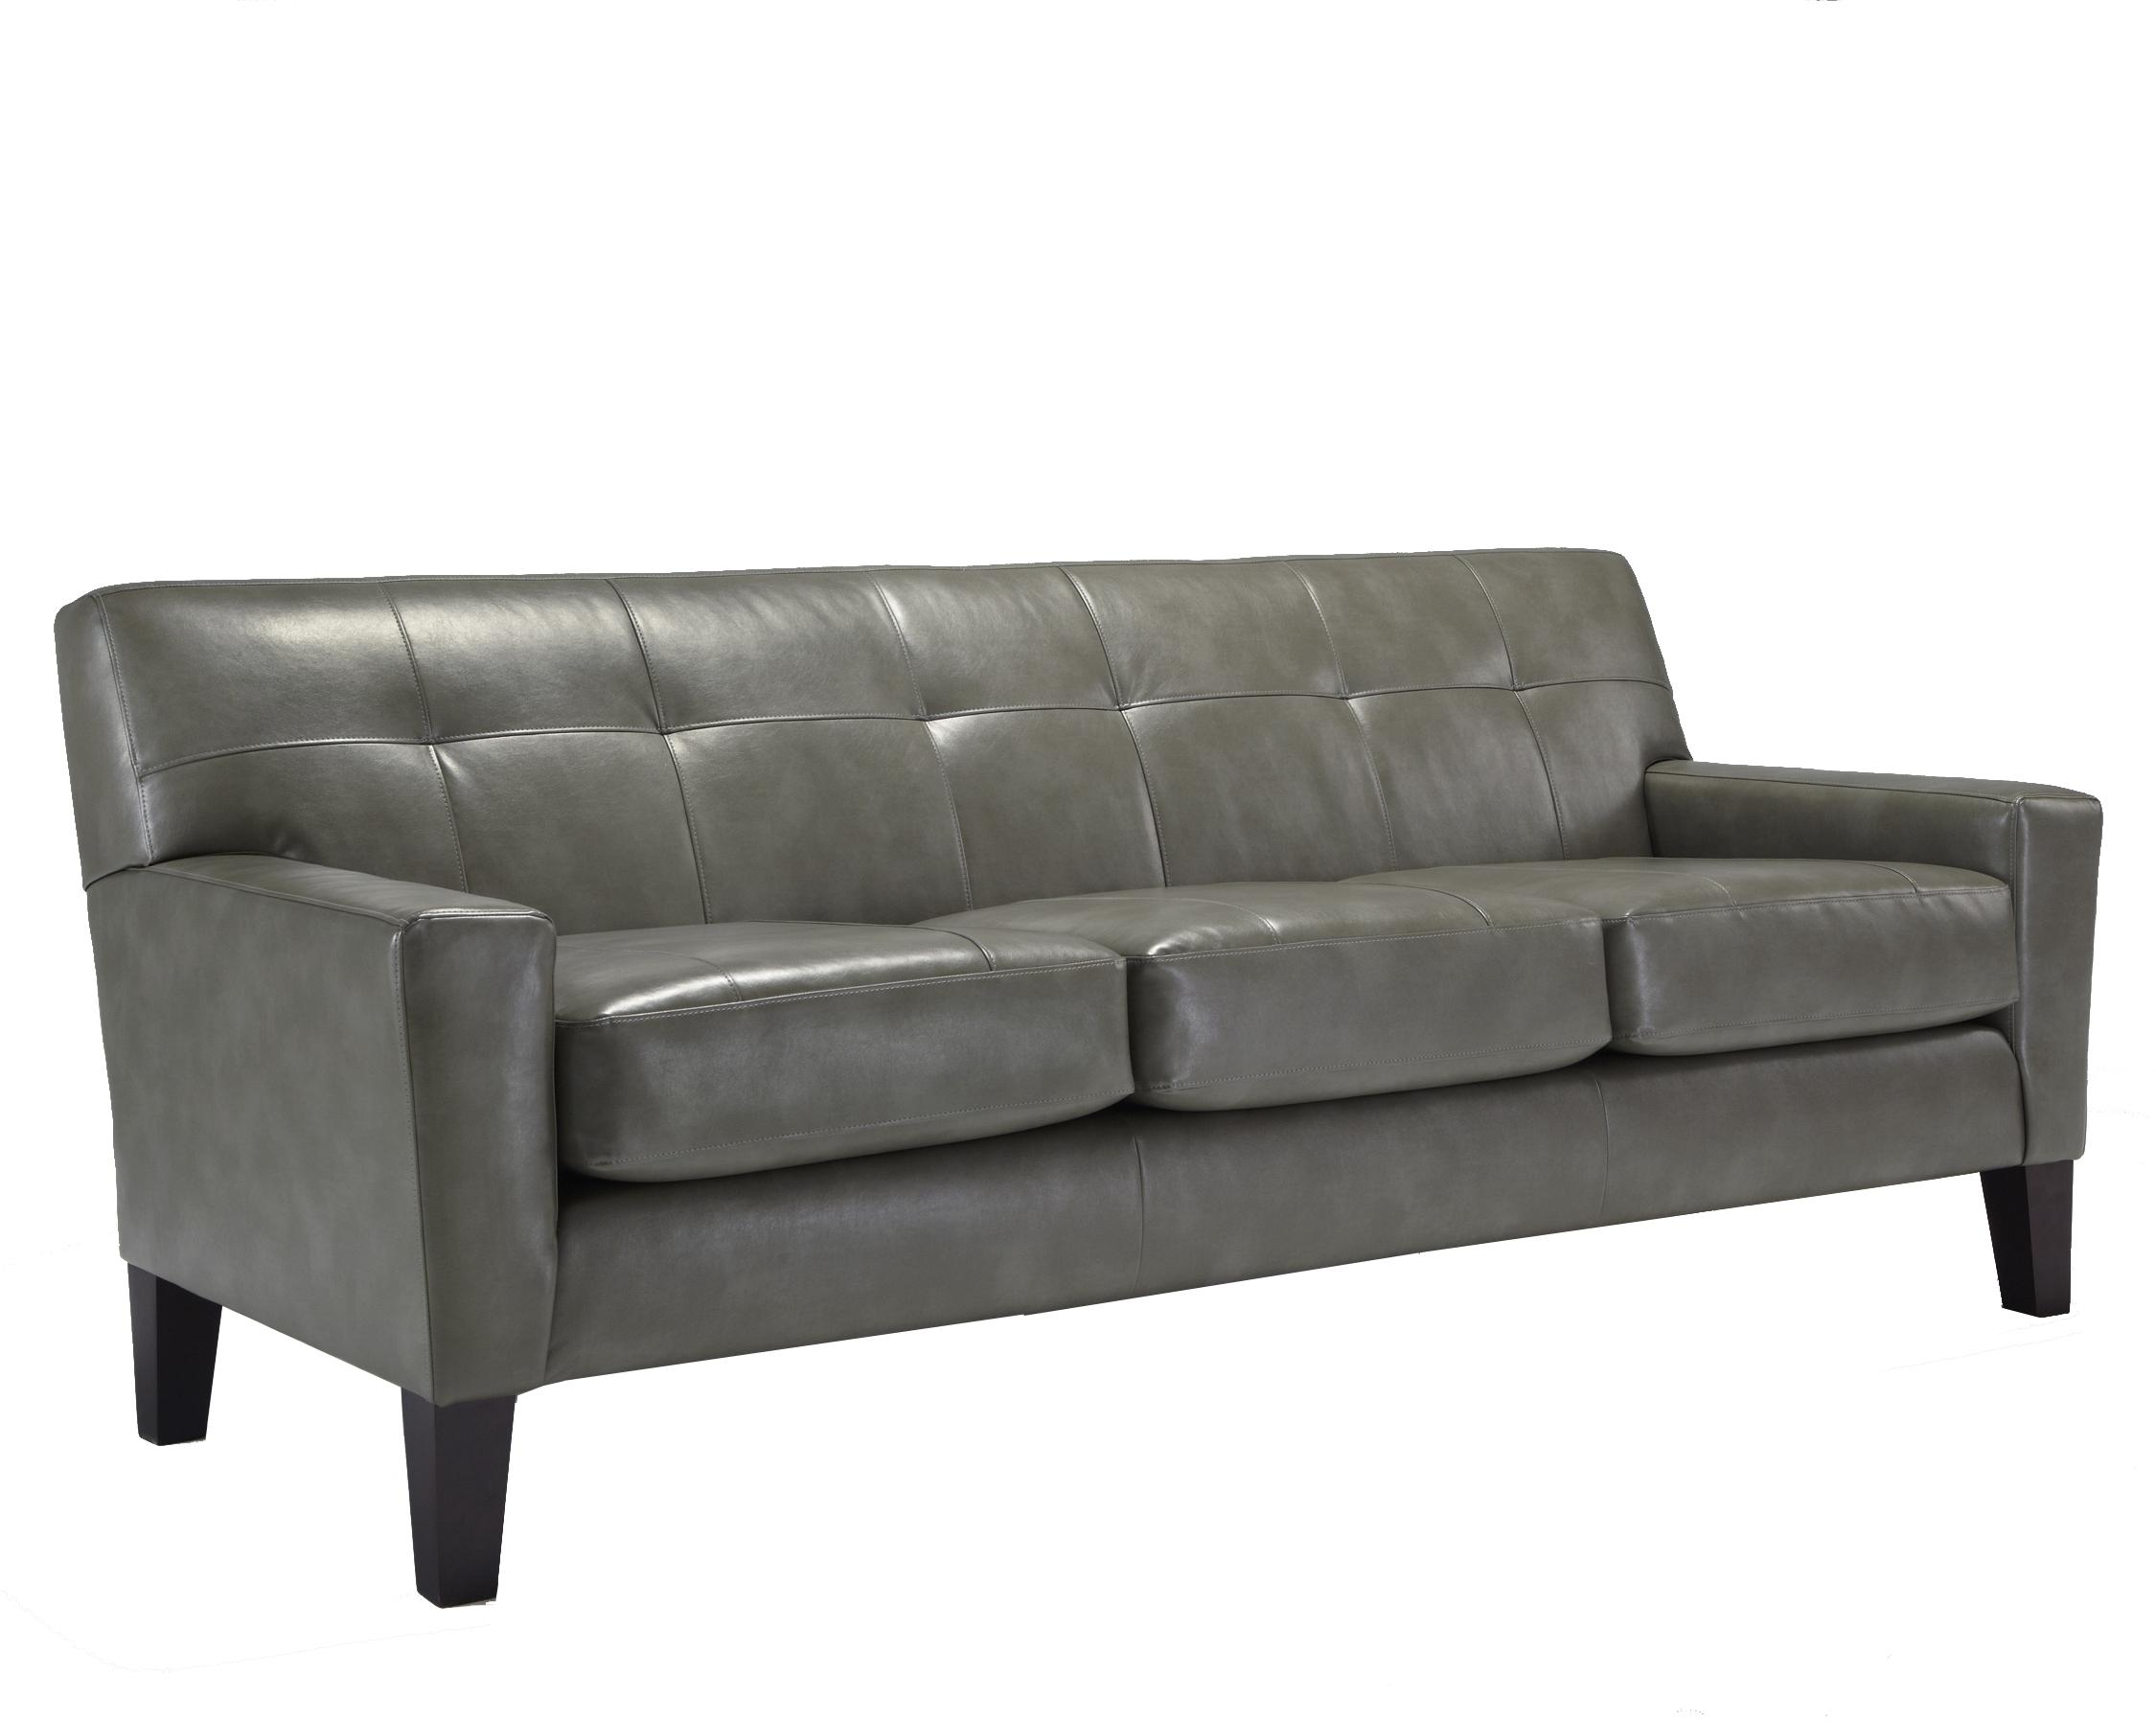 Contemporary Top Grain Leather Match Sofa with Tufting and Track